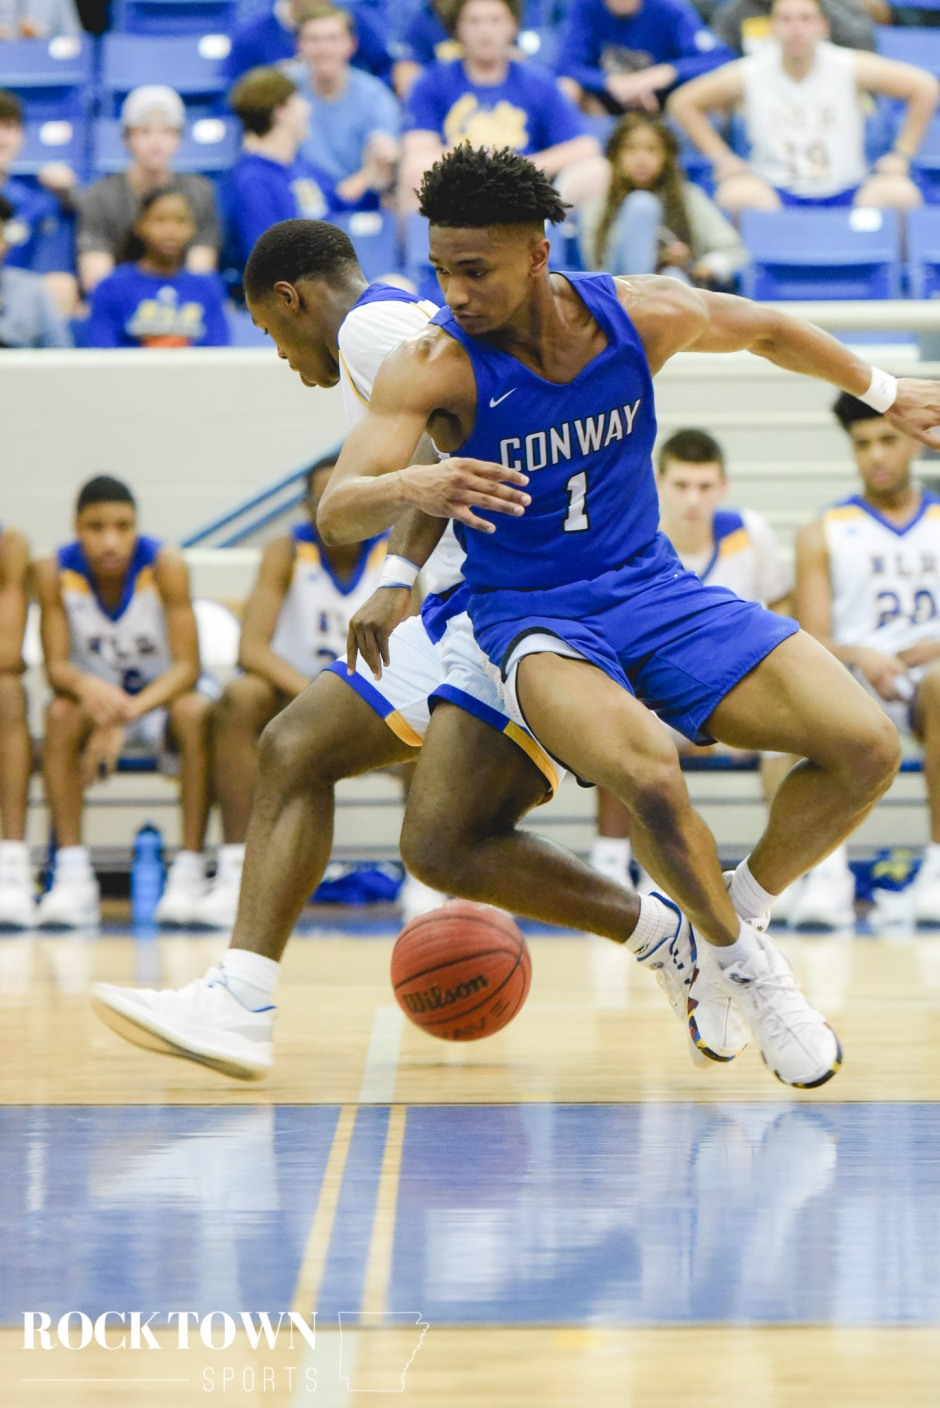 Conway_NLR_bball19(i)-77